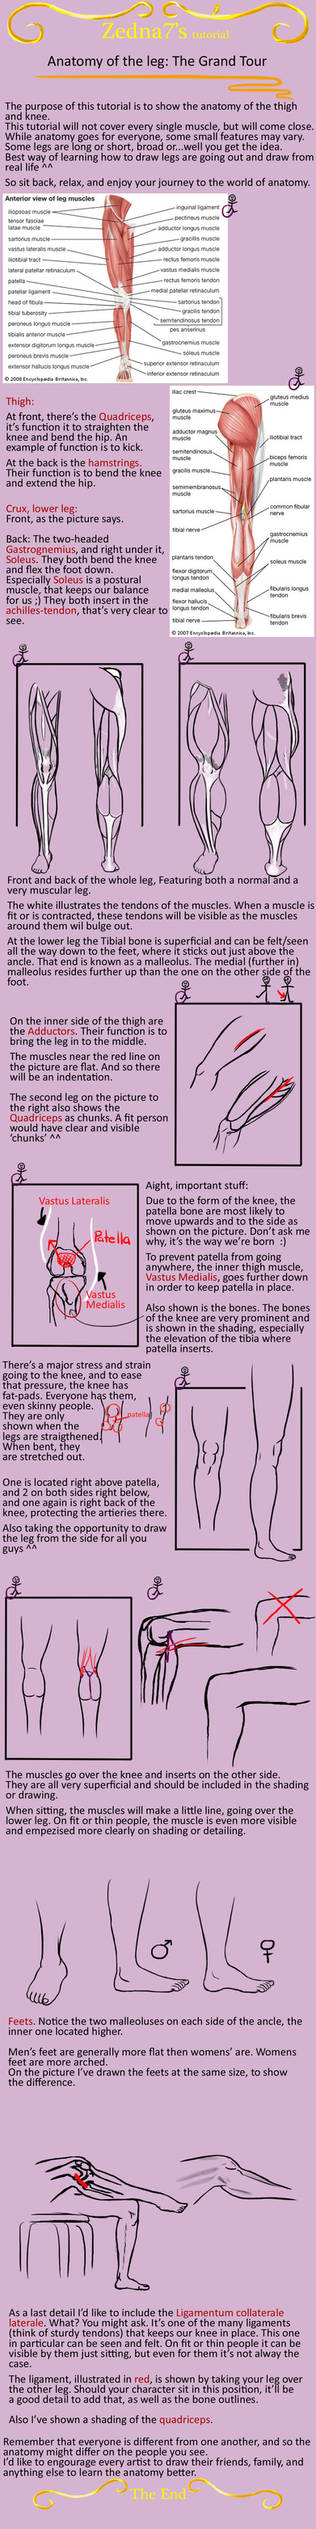 Anatomy of the leg: grand tour by Zedna7